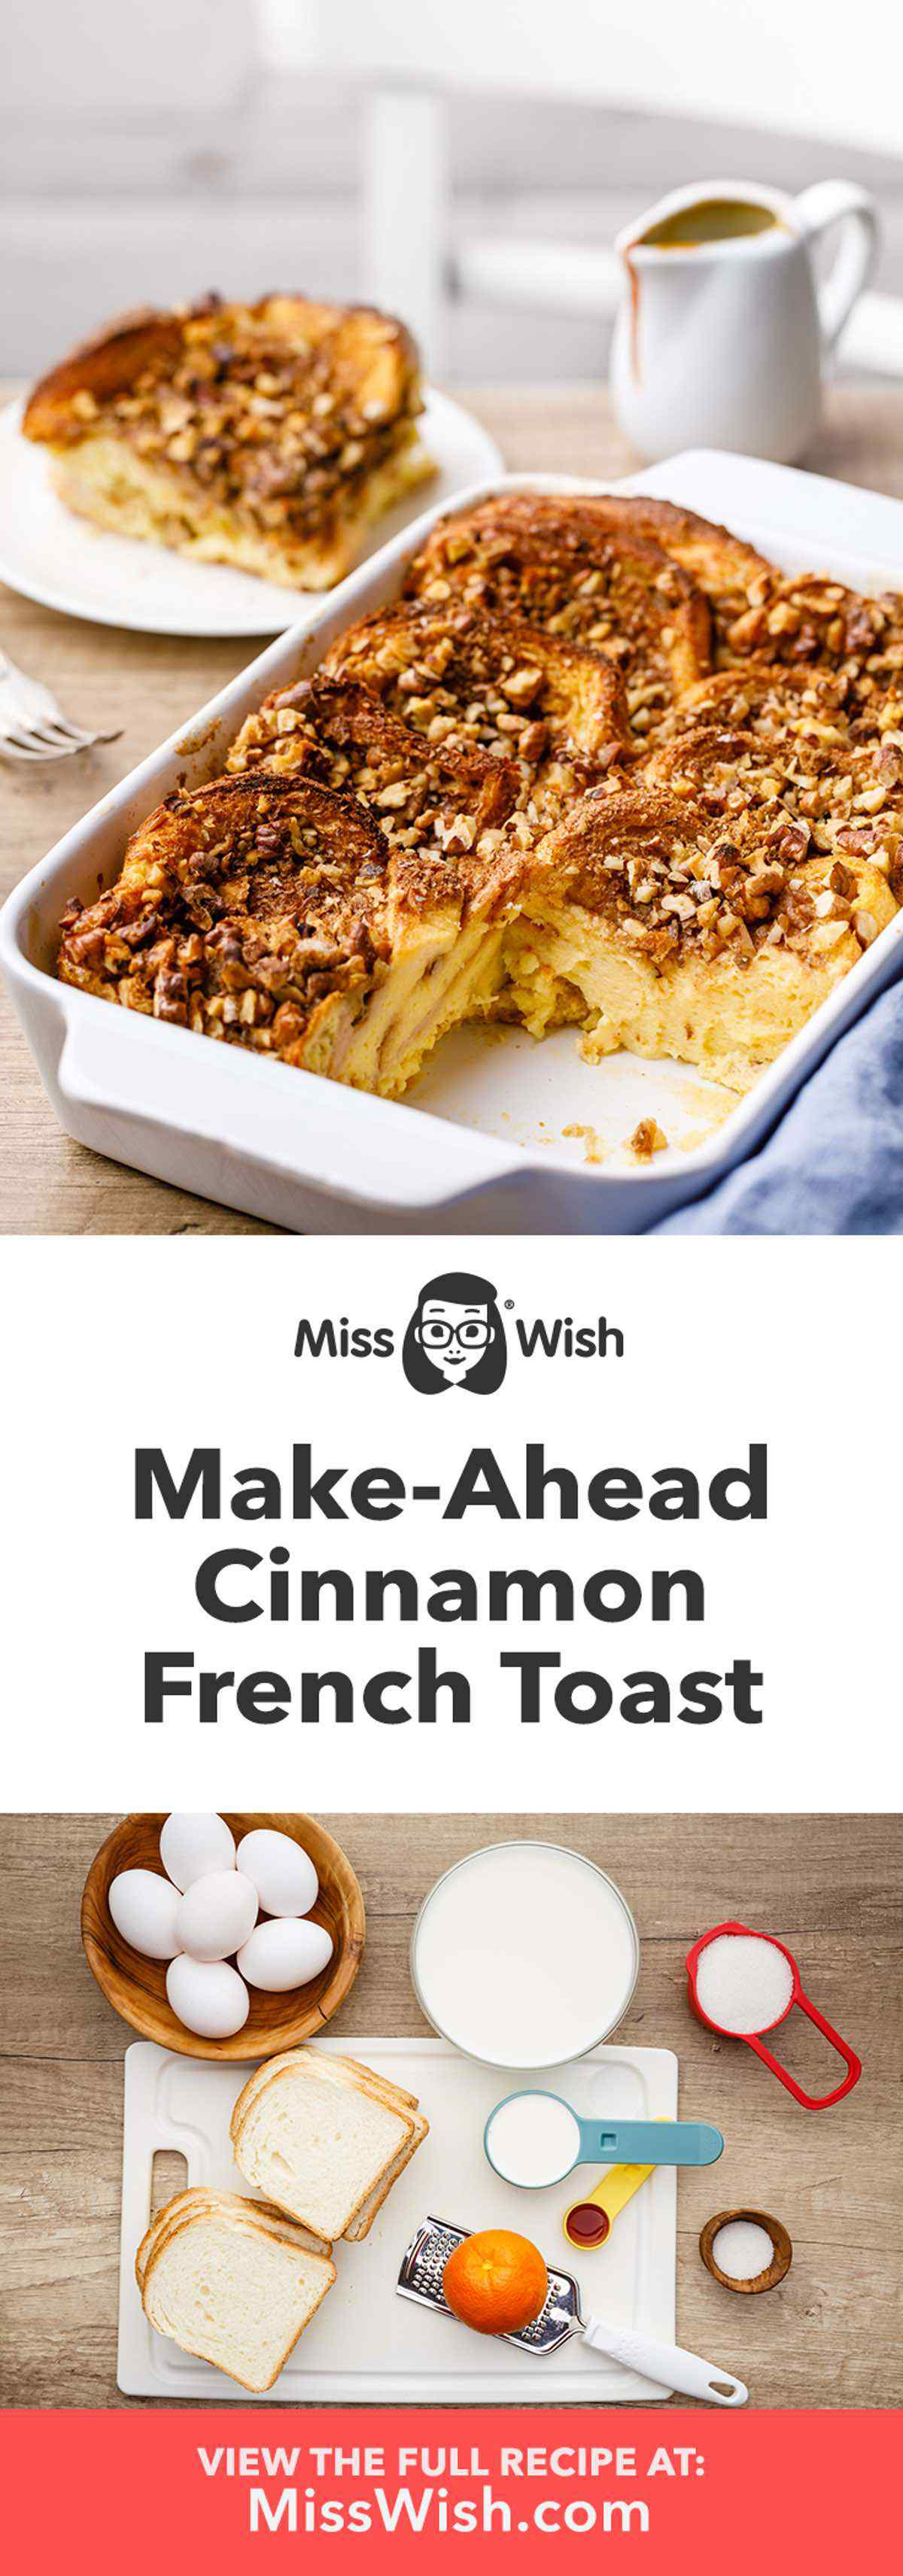 Make-Ahead Cinnamon French Toast